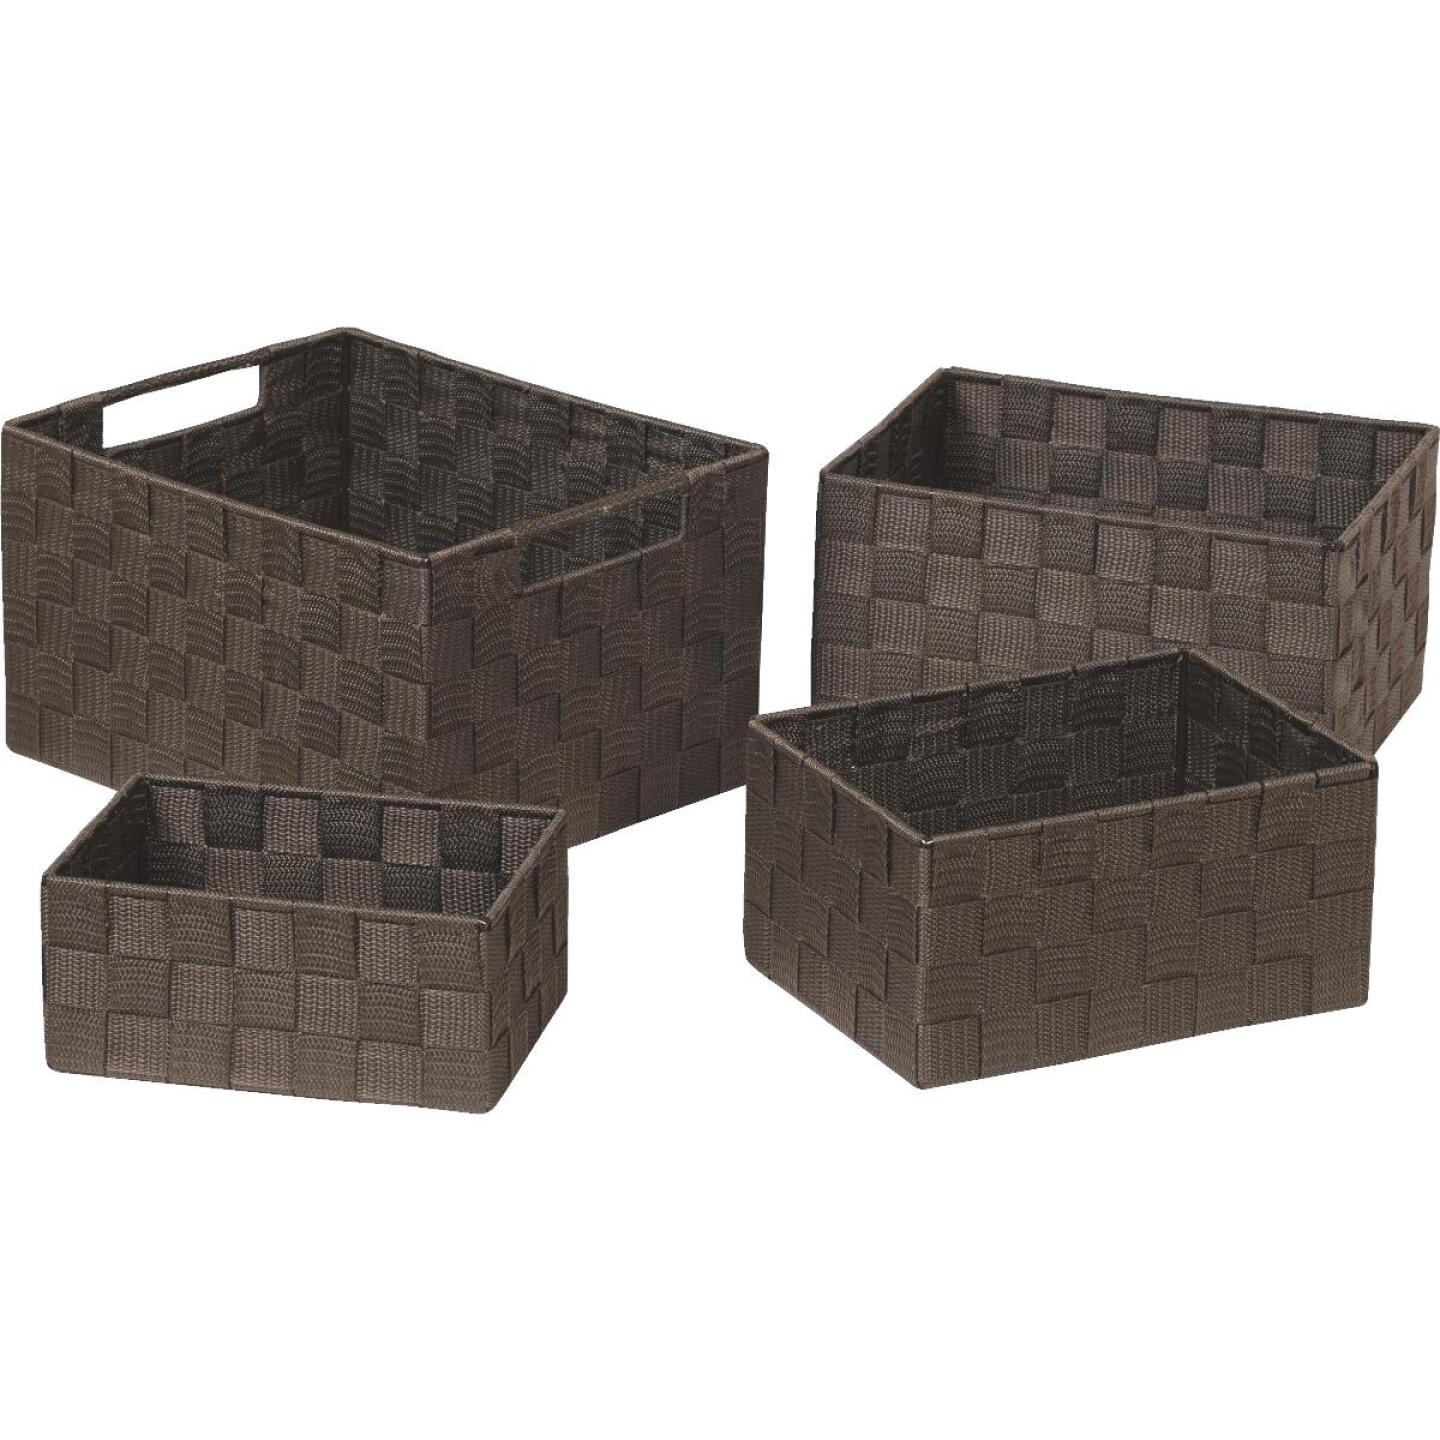 Home Impressions 4-Piece Woven Storage Basket Set, Brown Image 3